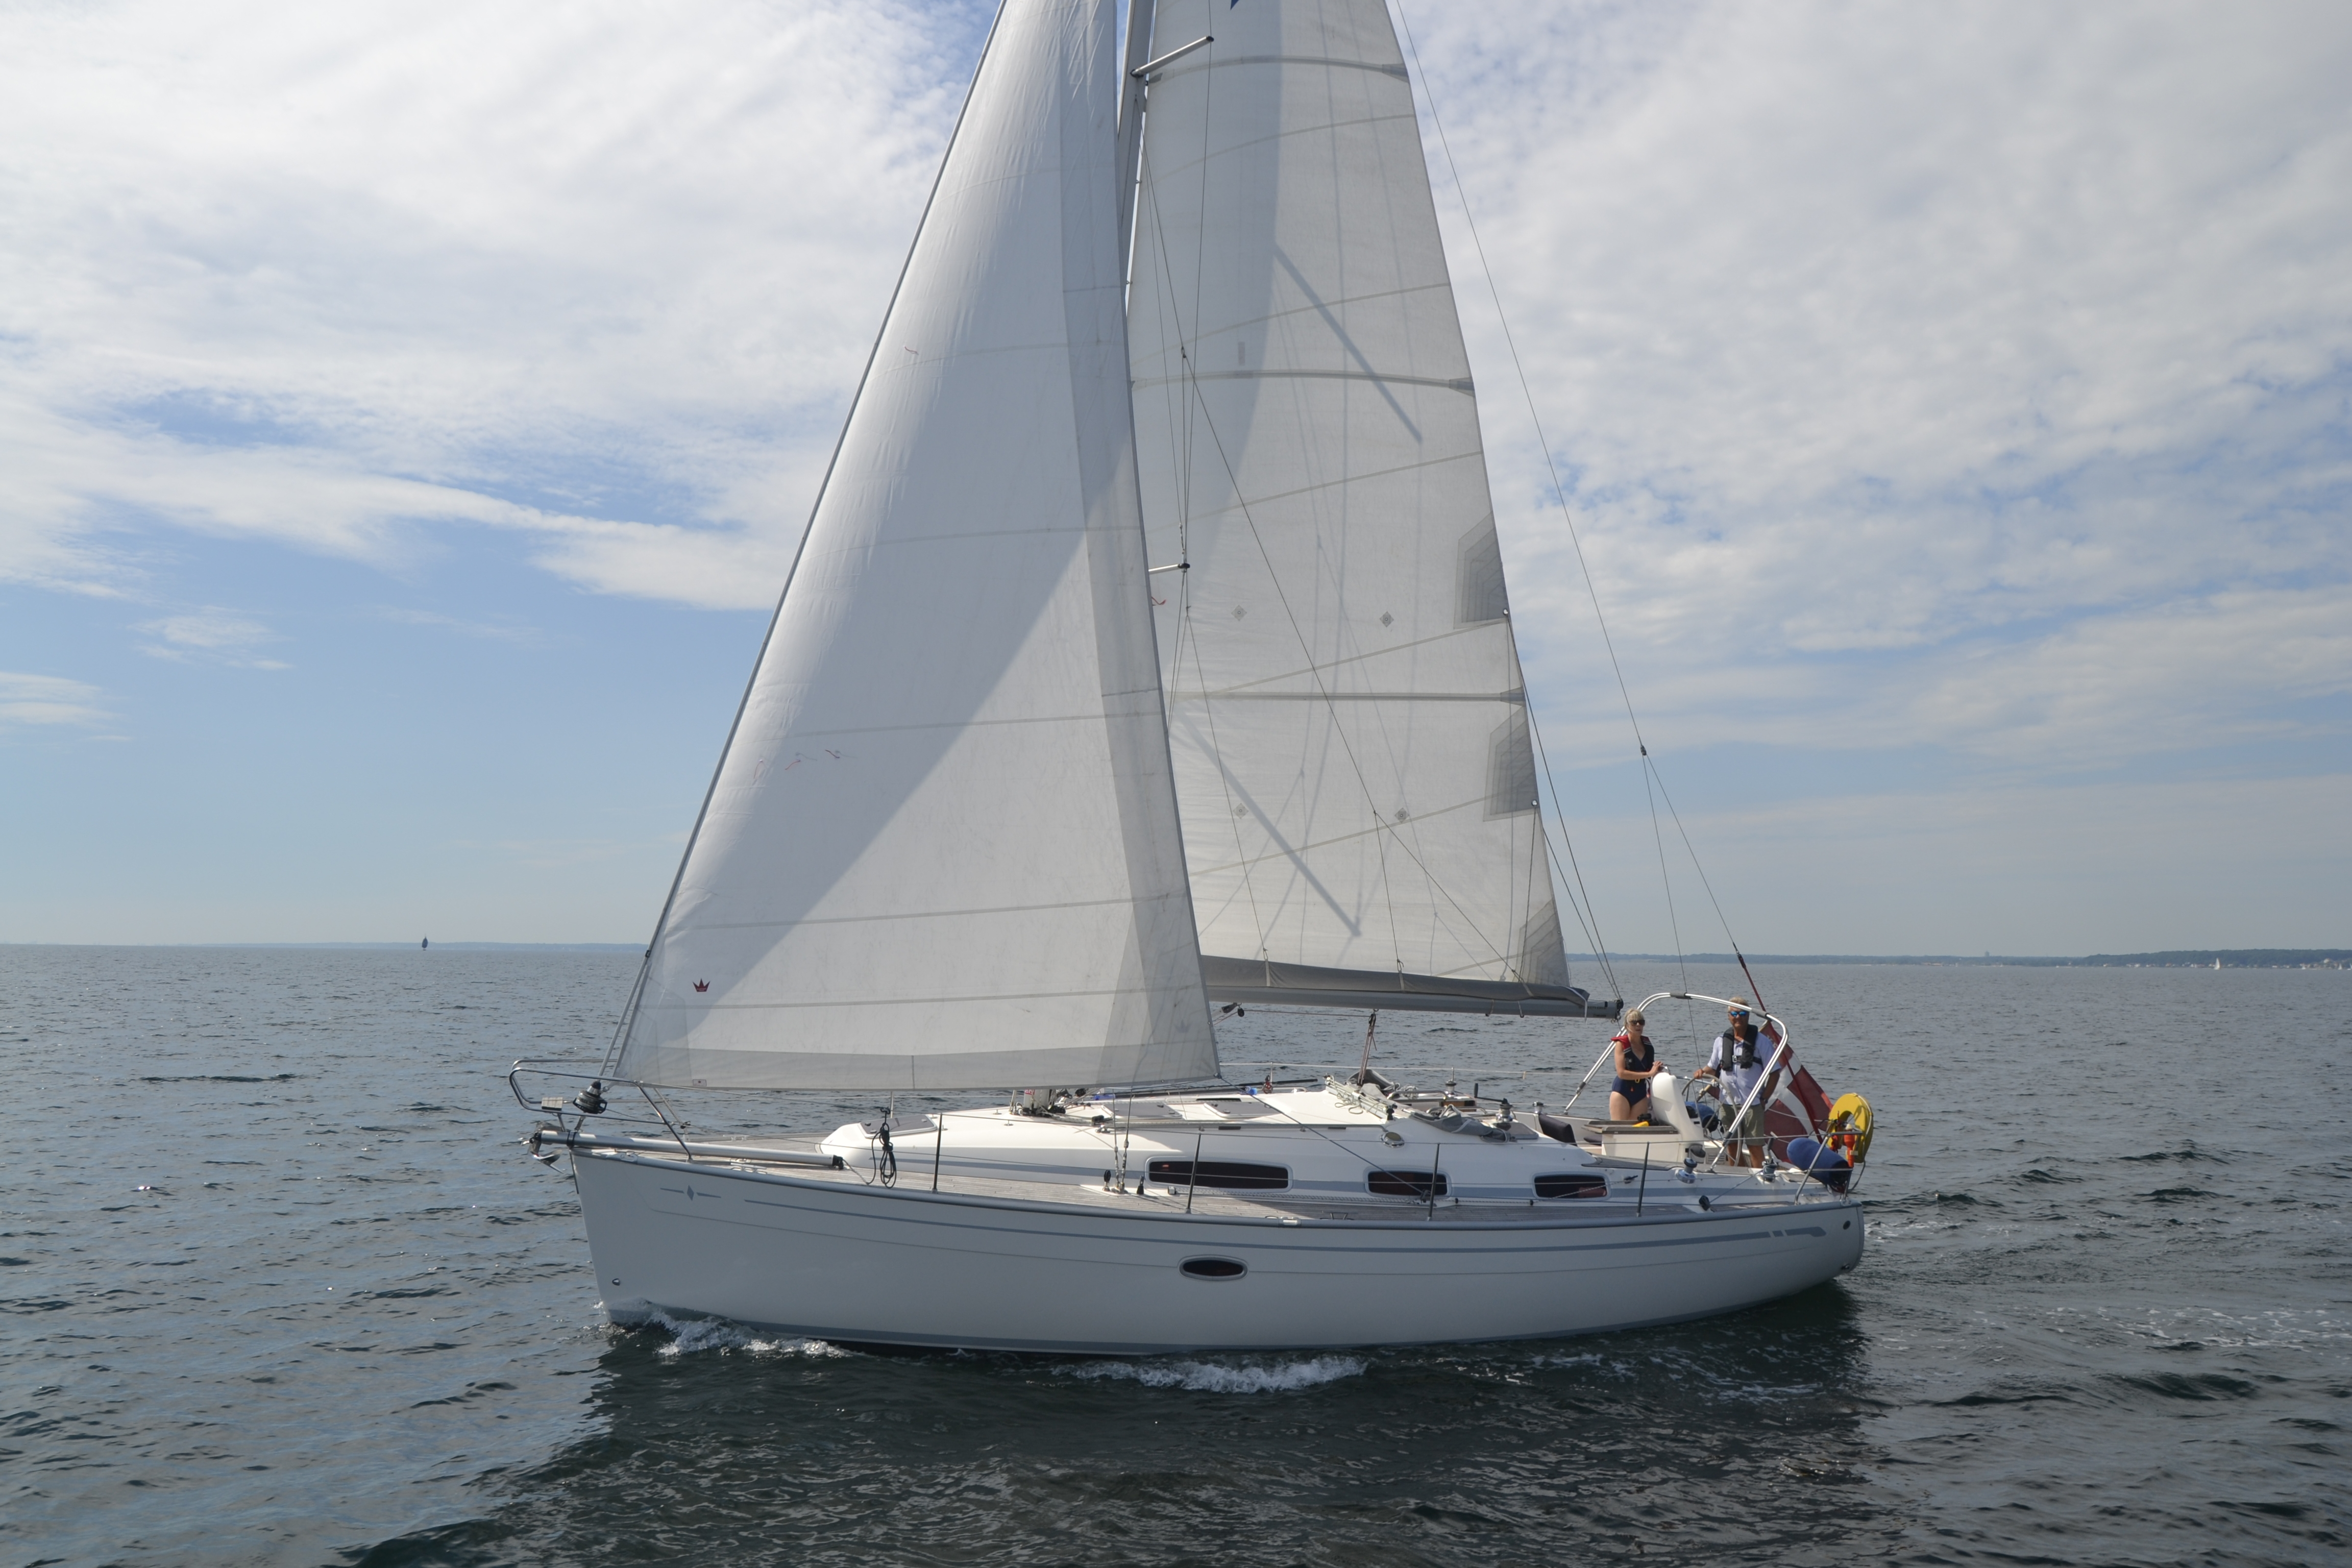 Bavaria 34 Cruiser Solgt / Sold